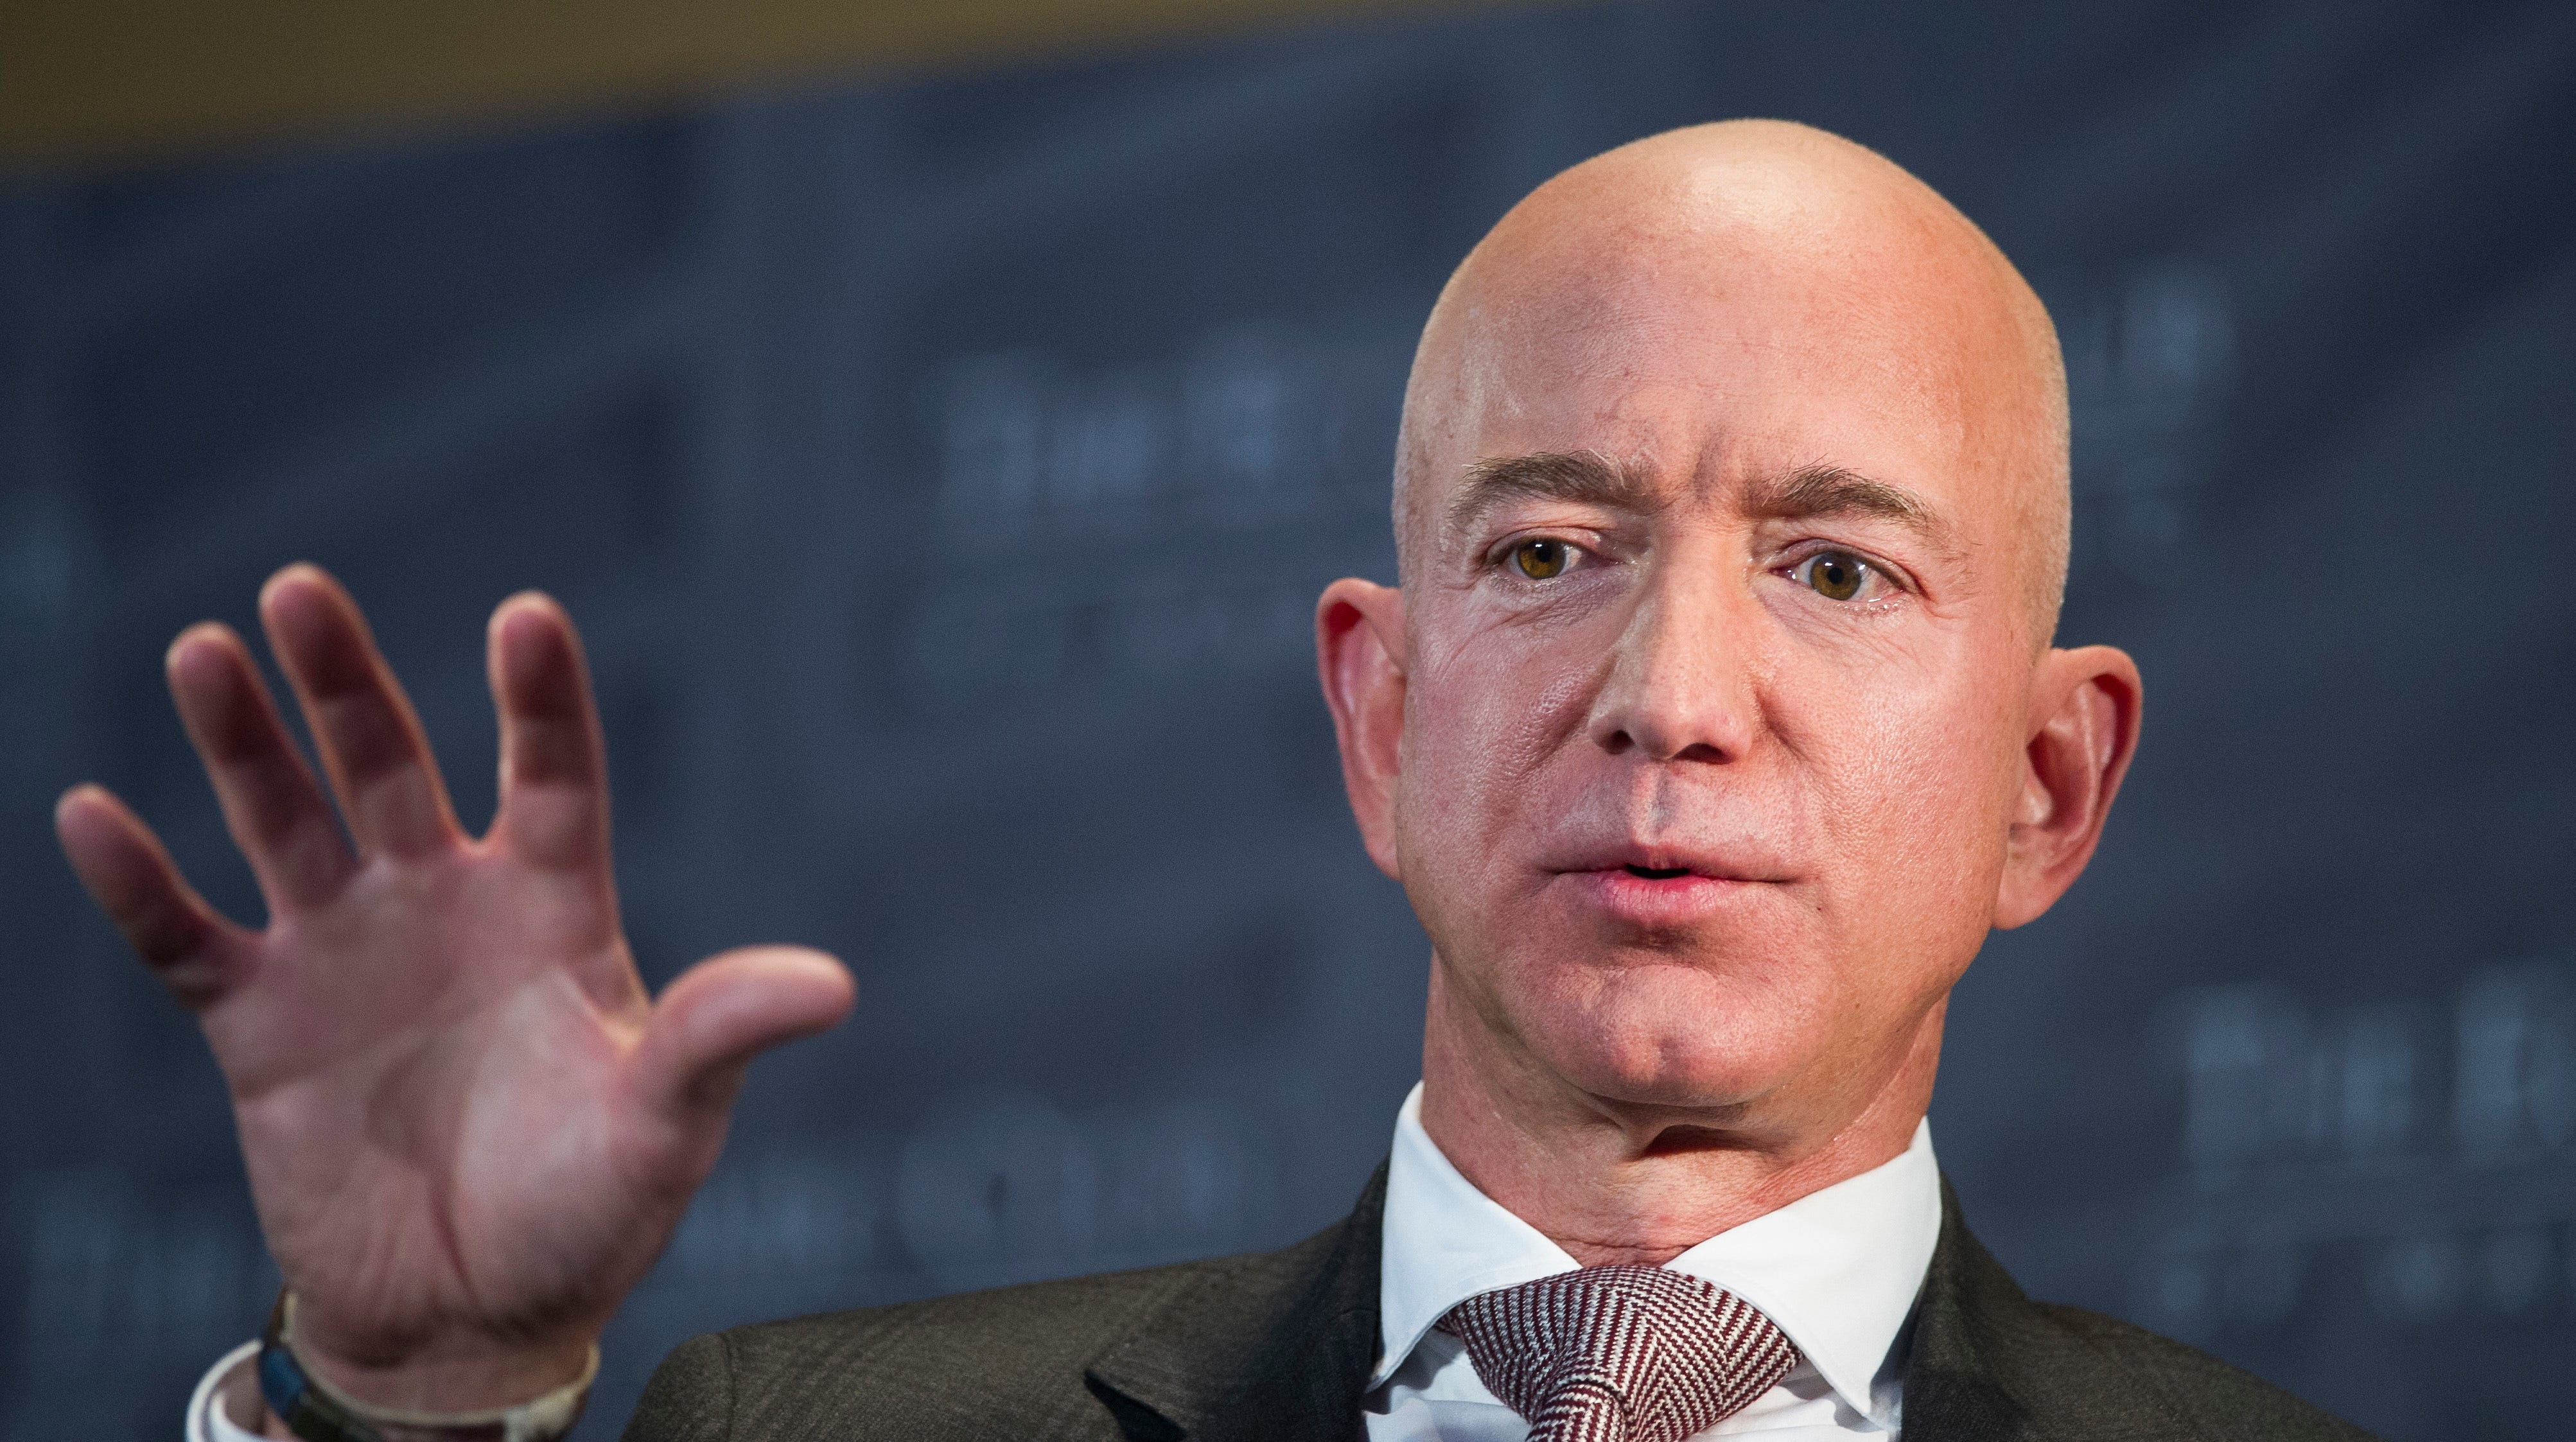 Jeff Bezos accused American Media Inc. (AMI) of blackmail and extortion and 'SNL' won't let him live it down.